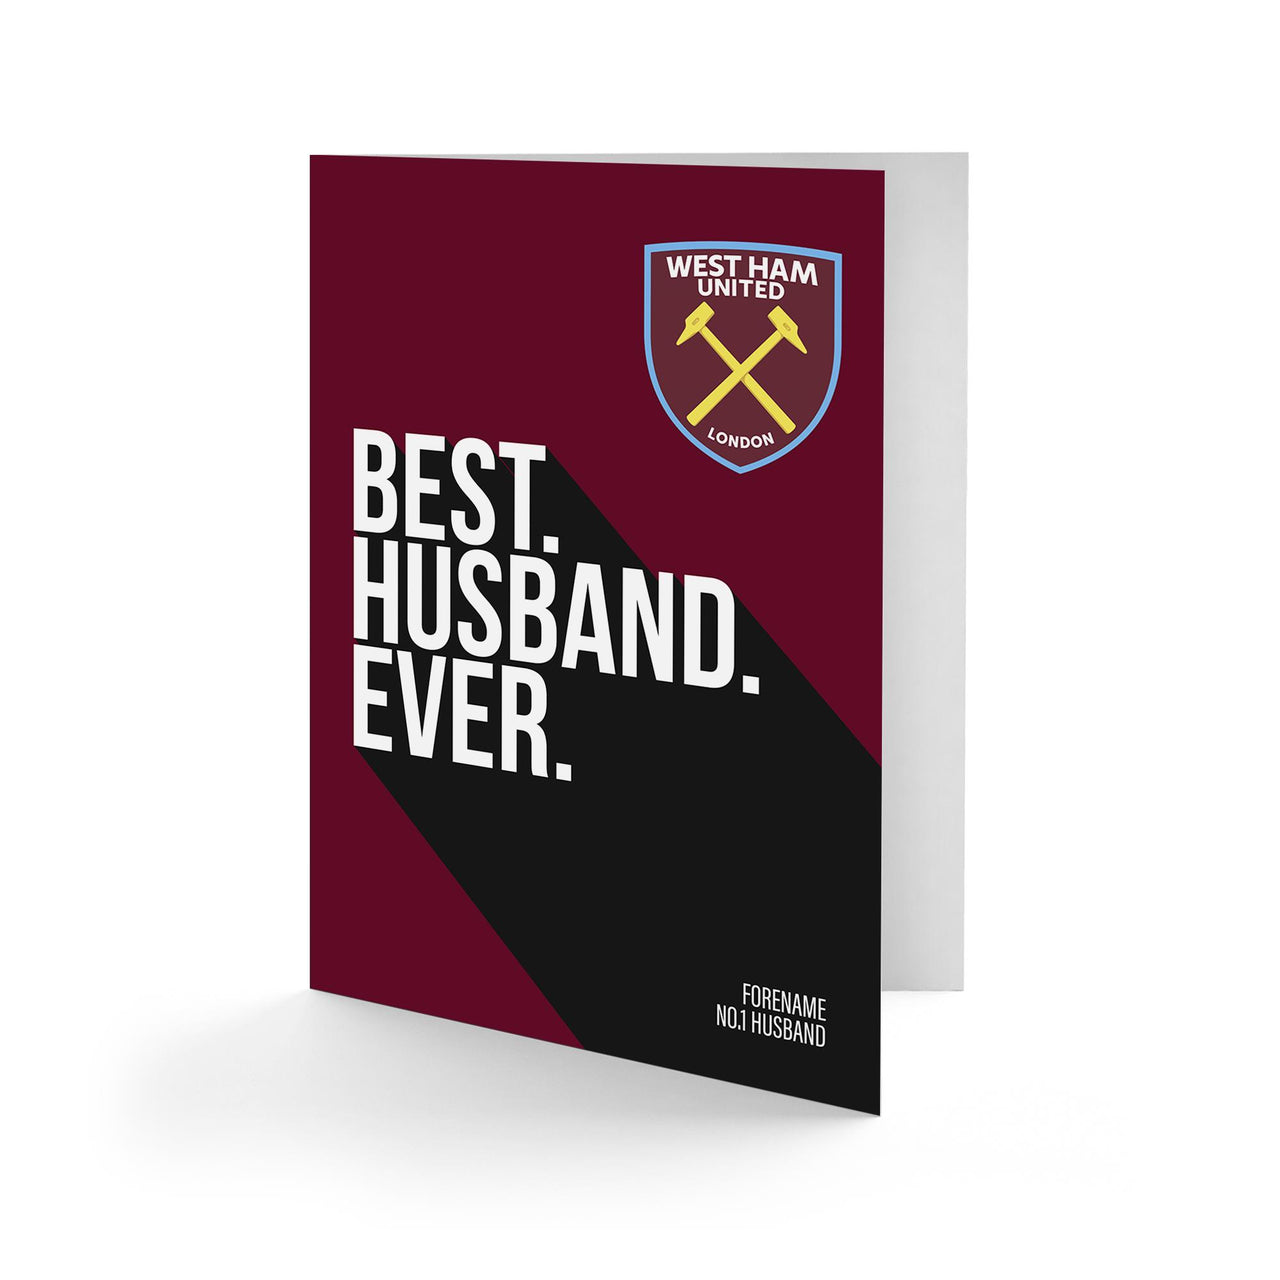 West Ham United Best Husband Ever Card